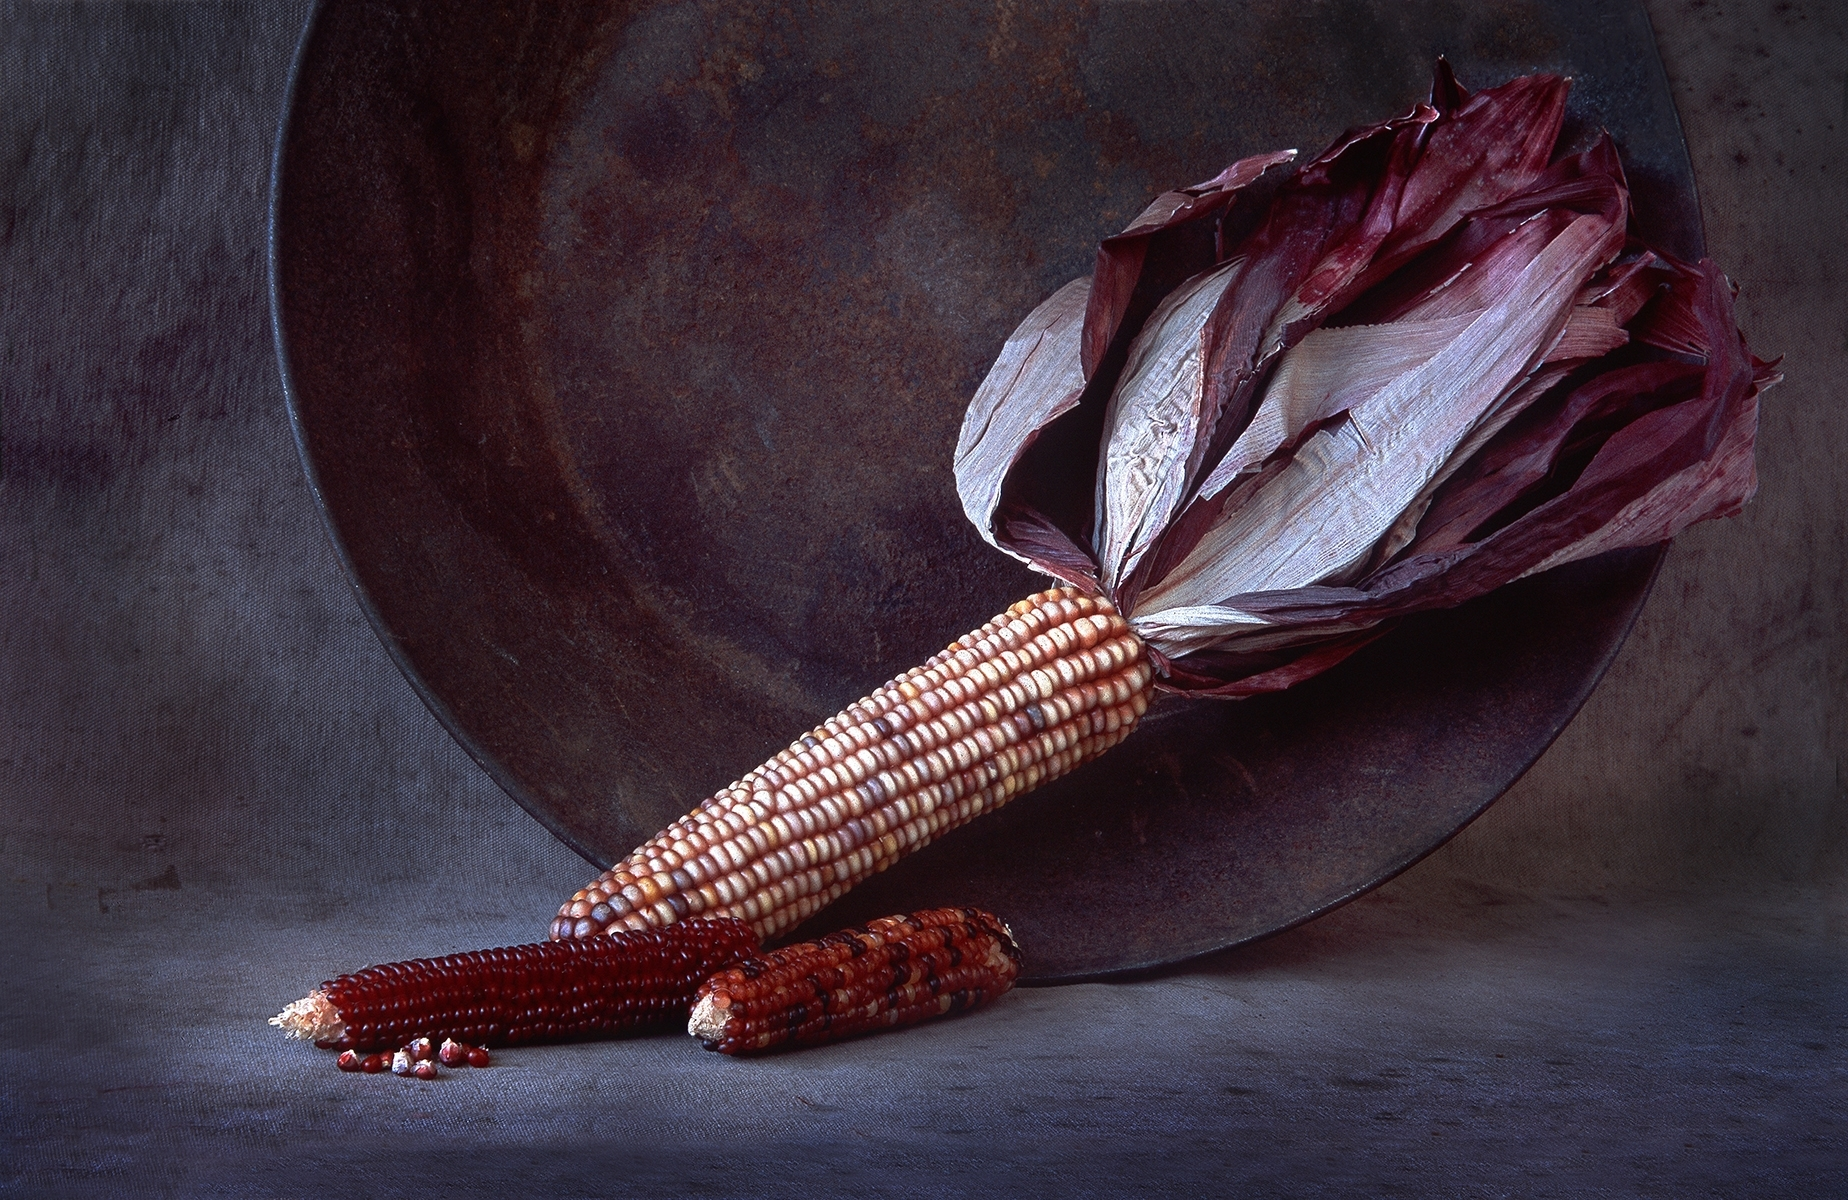 Old-Indian-Corn-and-Old-Rusted-Plate-PM-Best-in-Show-by-Claudia-Peterson-LS